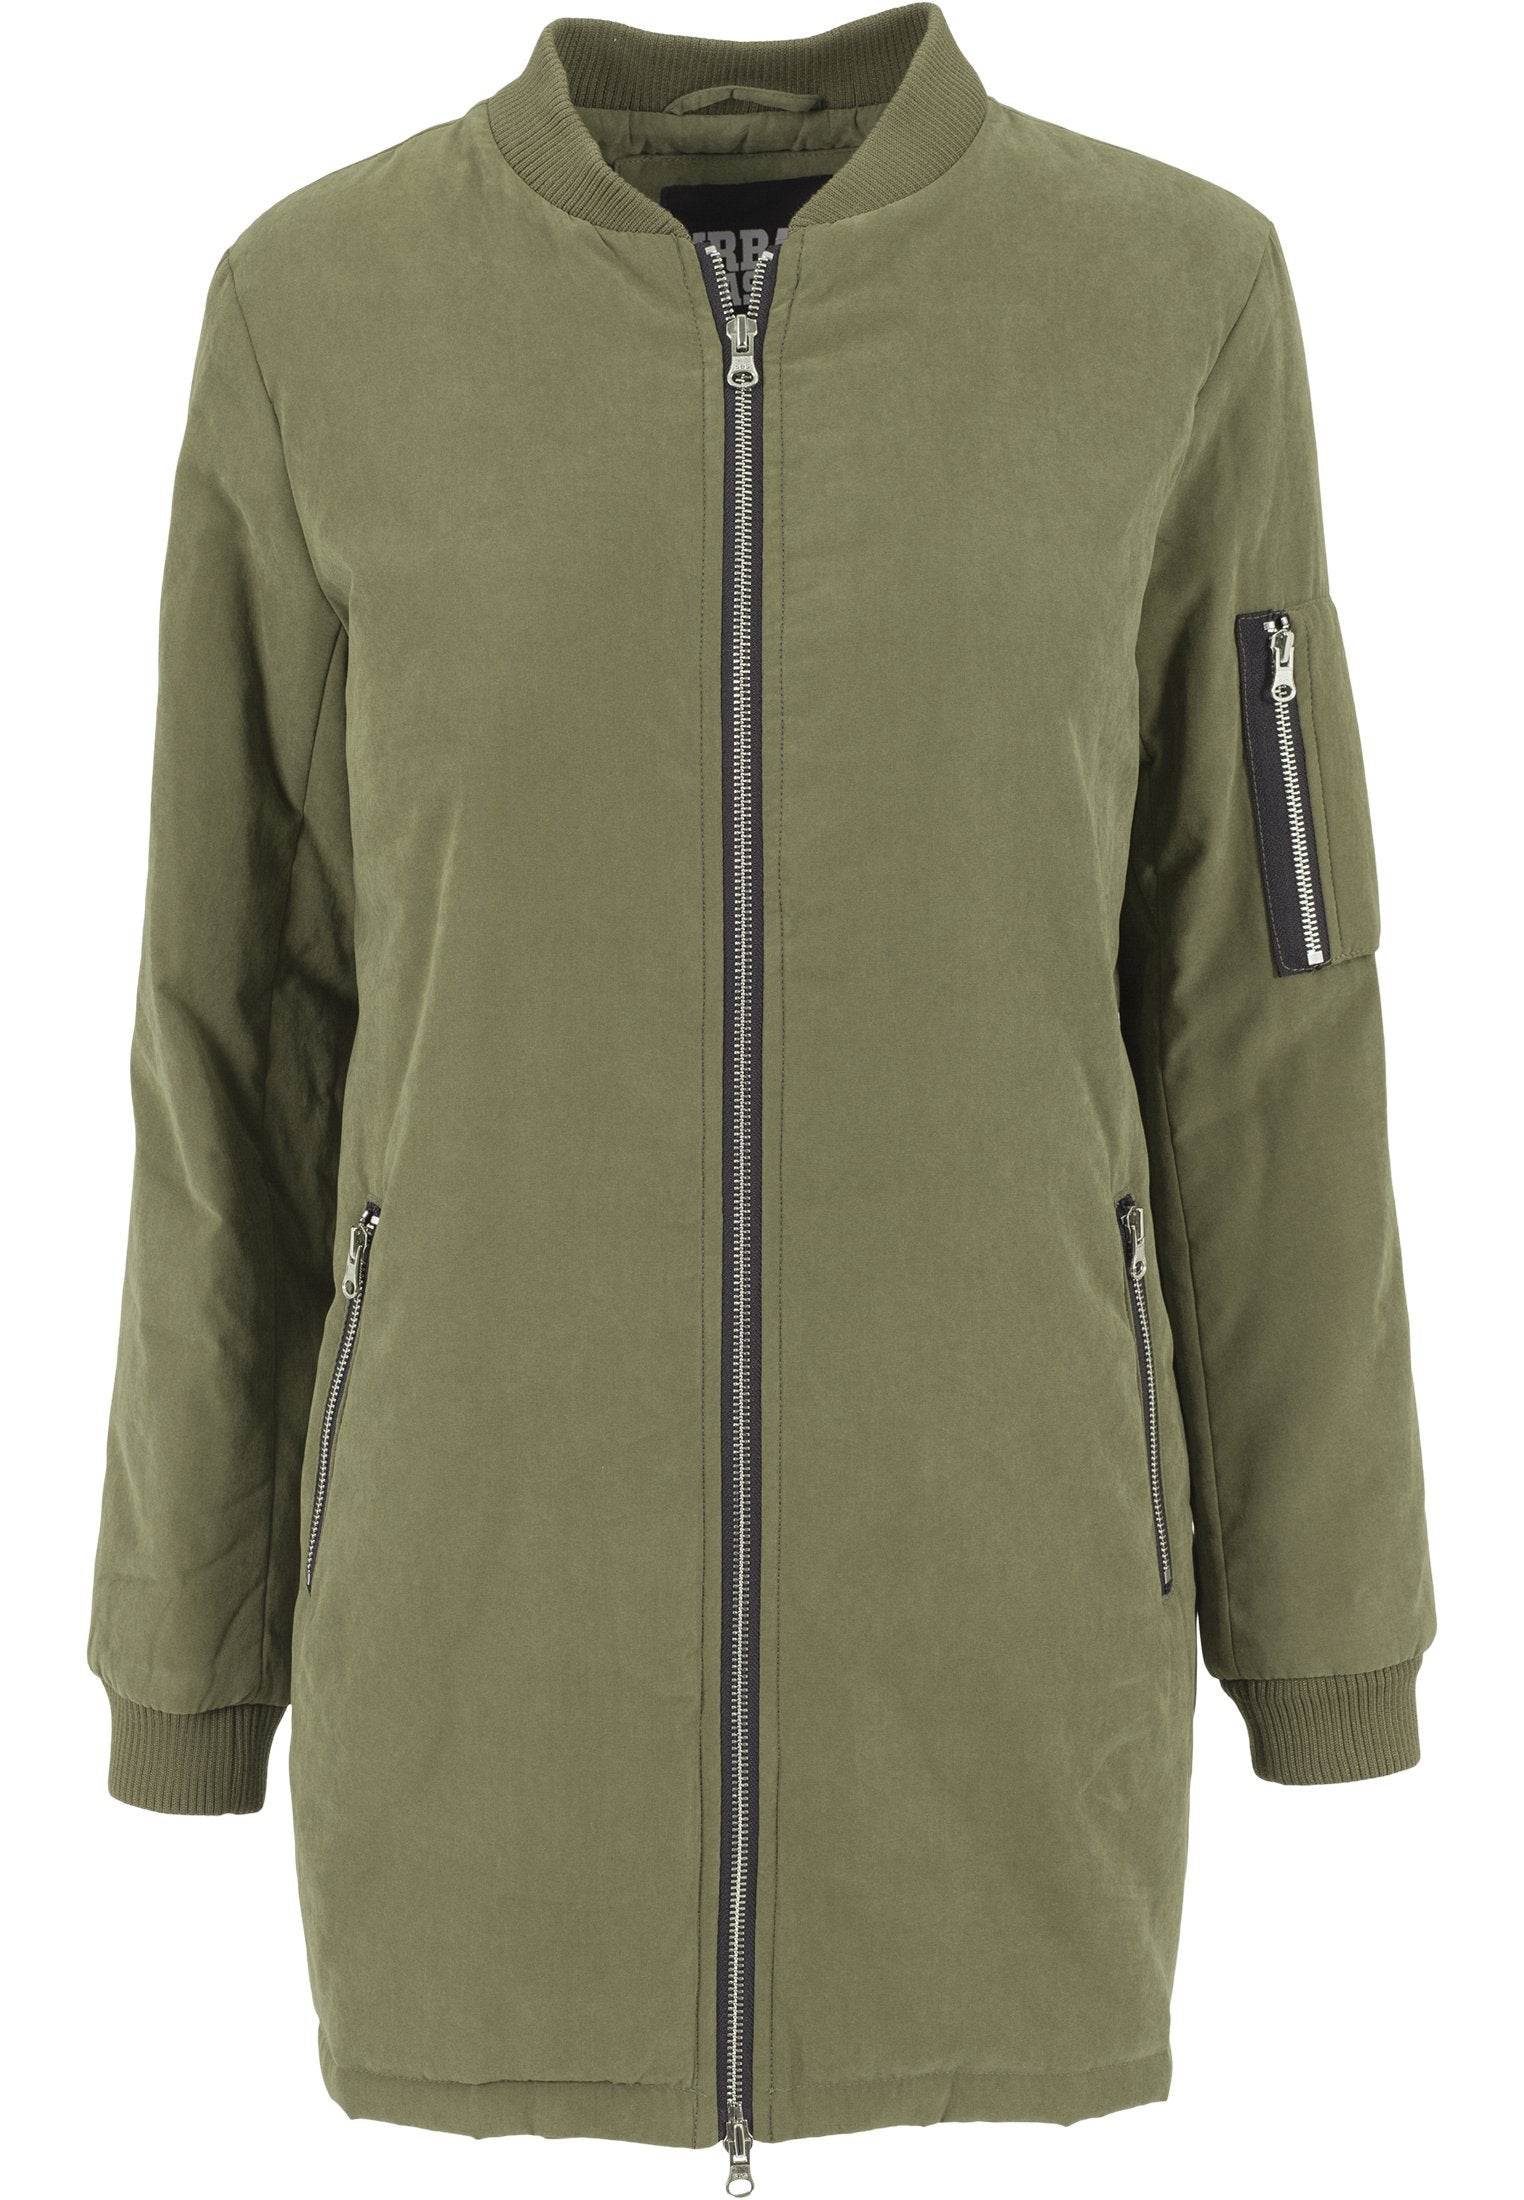 Urban Classics Ladies Peached Long Bomber Jacket - Urban Classics Ladies Peached Long Bomber Jacket 90% Polyester 10% Polyamid, Peached Twill, Bomber jackets er den nye new trend - og nu kan du få den i en lang version. Ladies Peached Long Bomber Jacket fra URBAN CLASSICS har en komfortabel fit, og som de